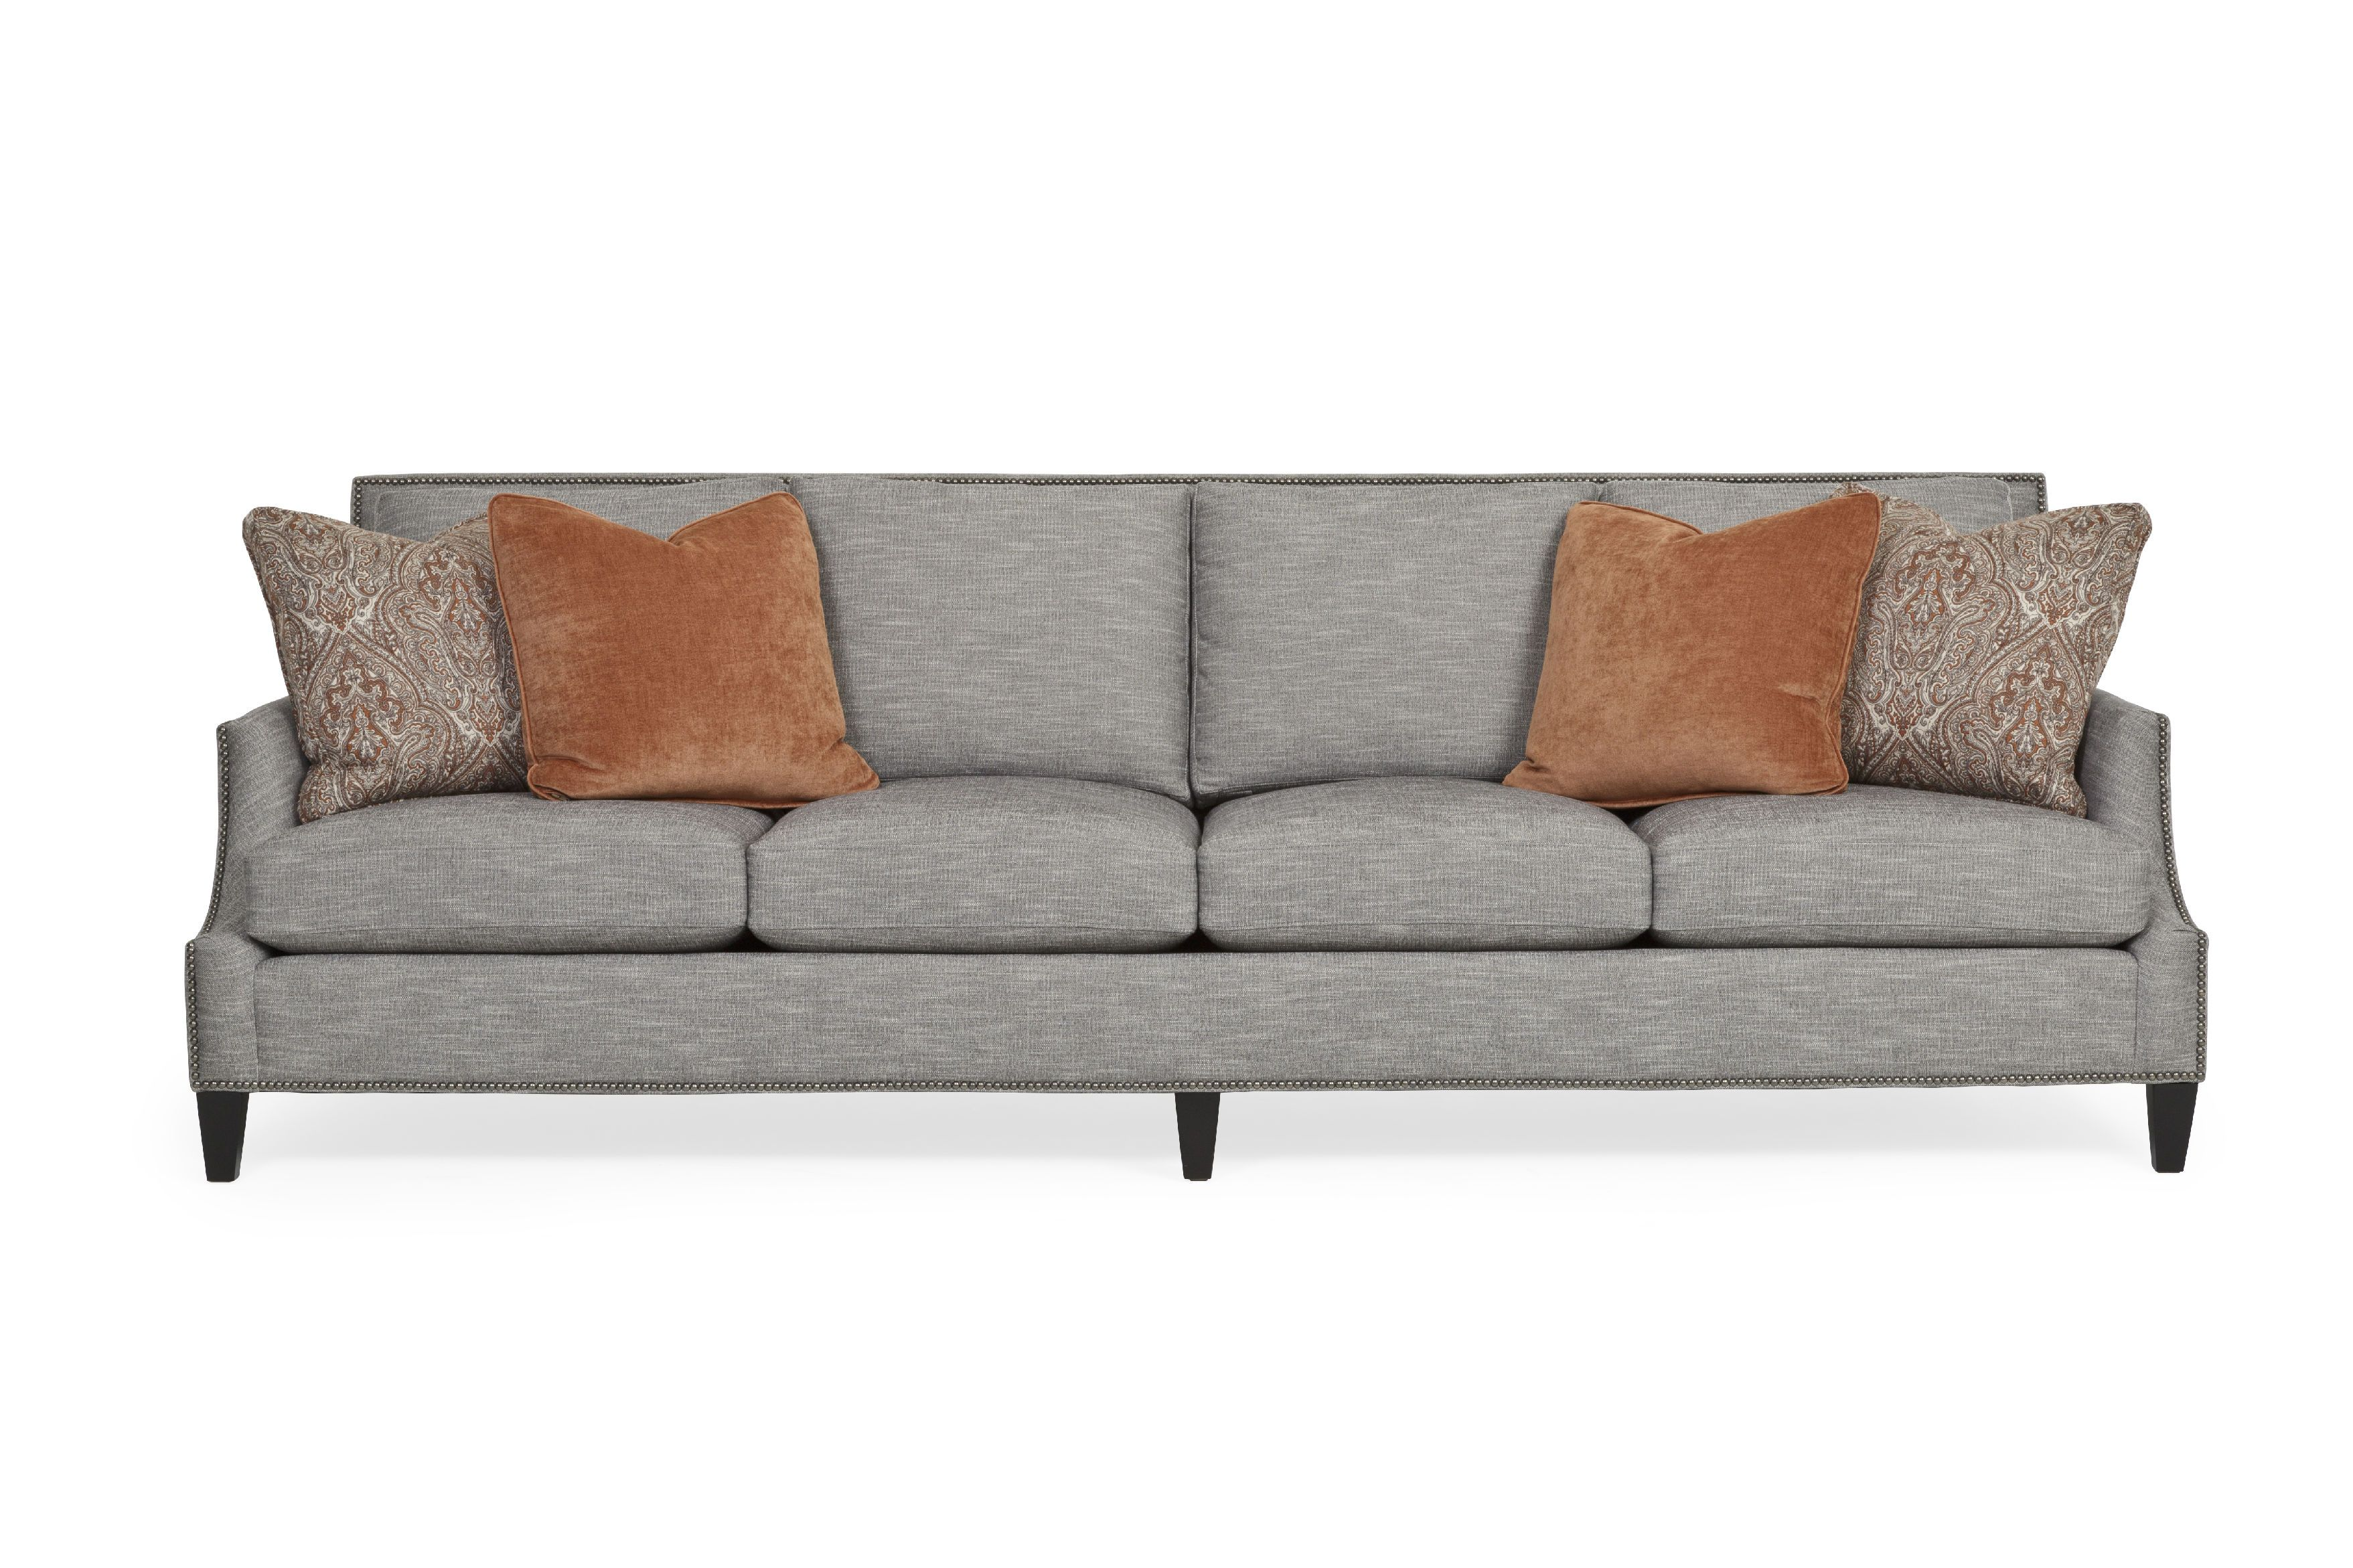 At Nine Feet Long 108 This Stunning Bernhardt Sofa Fits The Whole